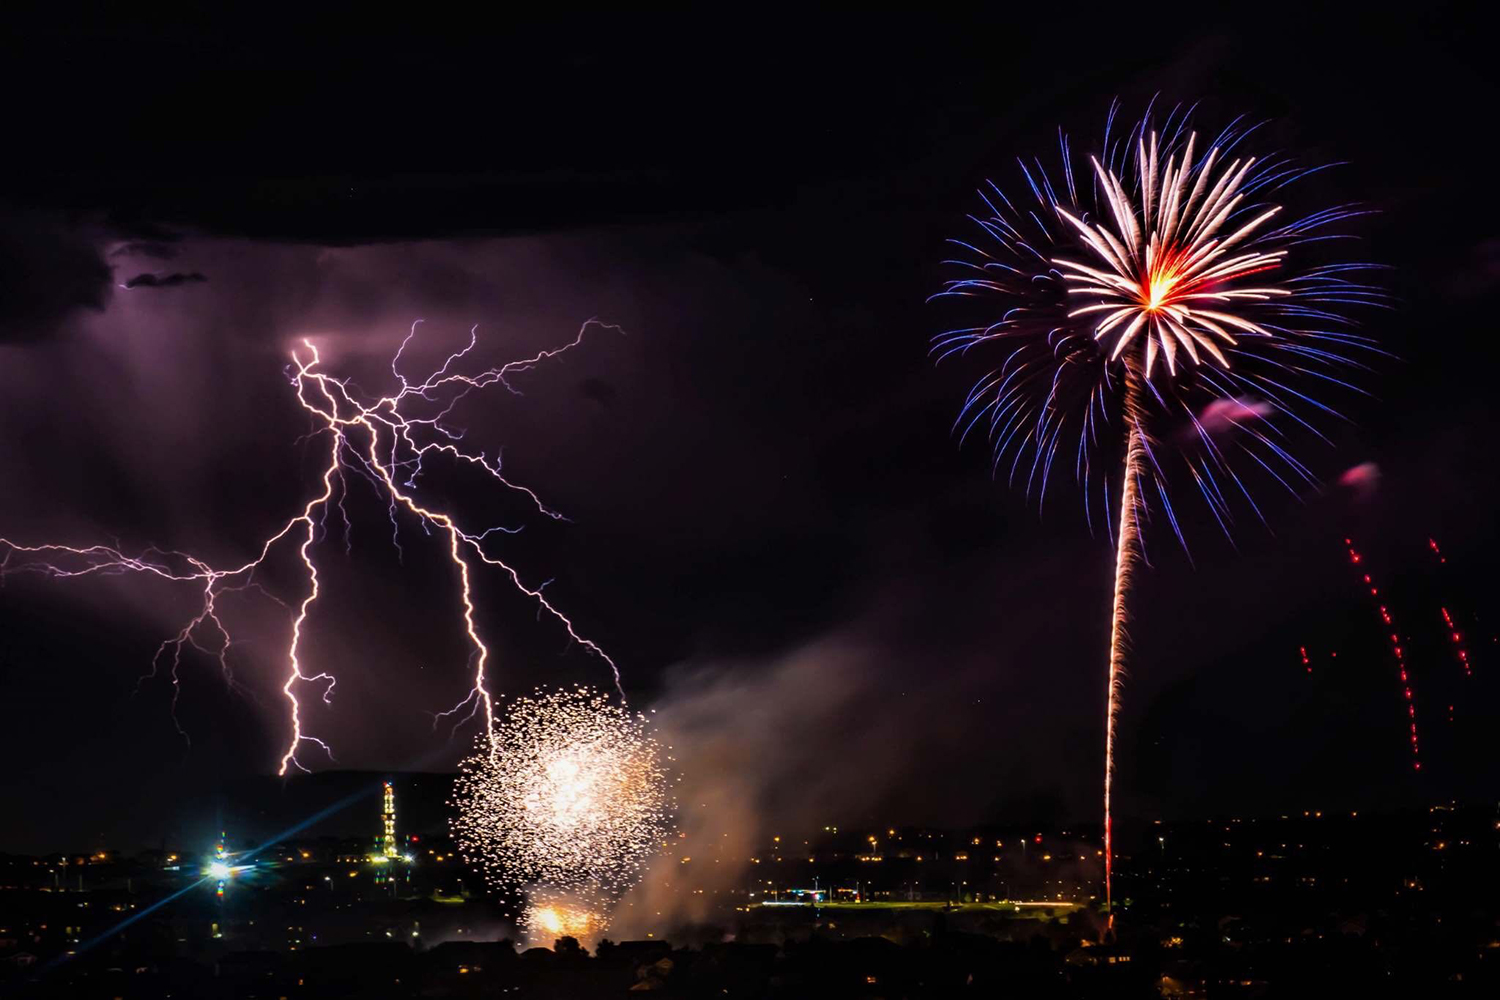 https://i1.wp.com/digital-photography-school.com/wp-content/uploads/2019/07/Lynn-Wernsmann-fireworks.jpg?resize=1500%2C1000&ssl=1